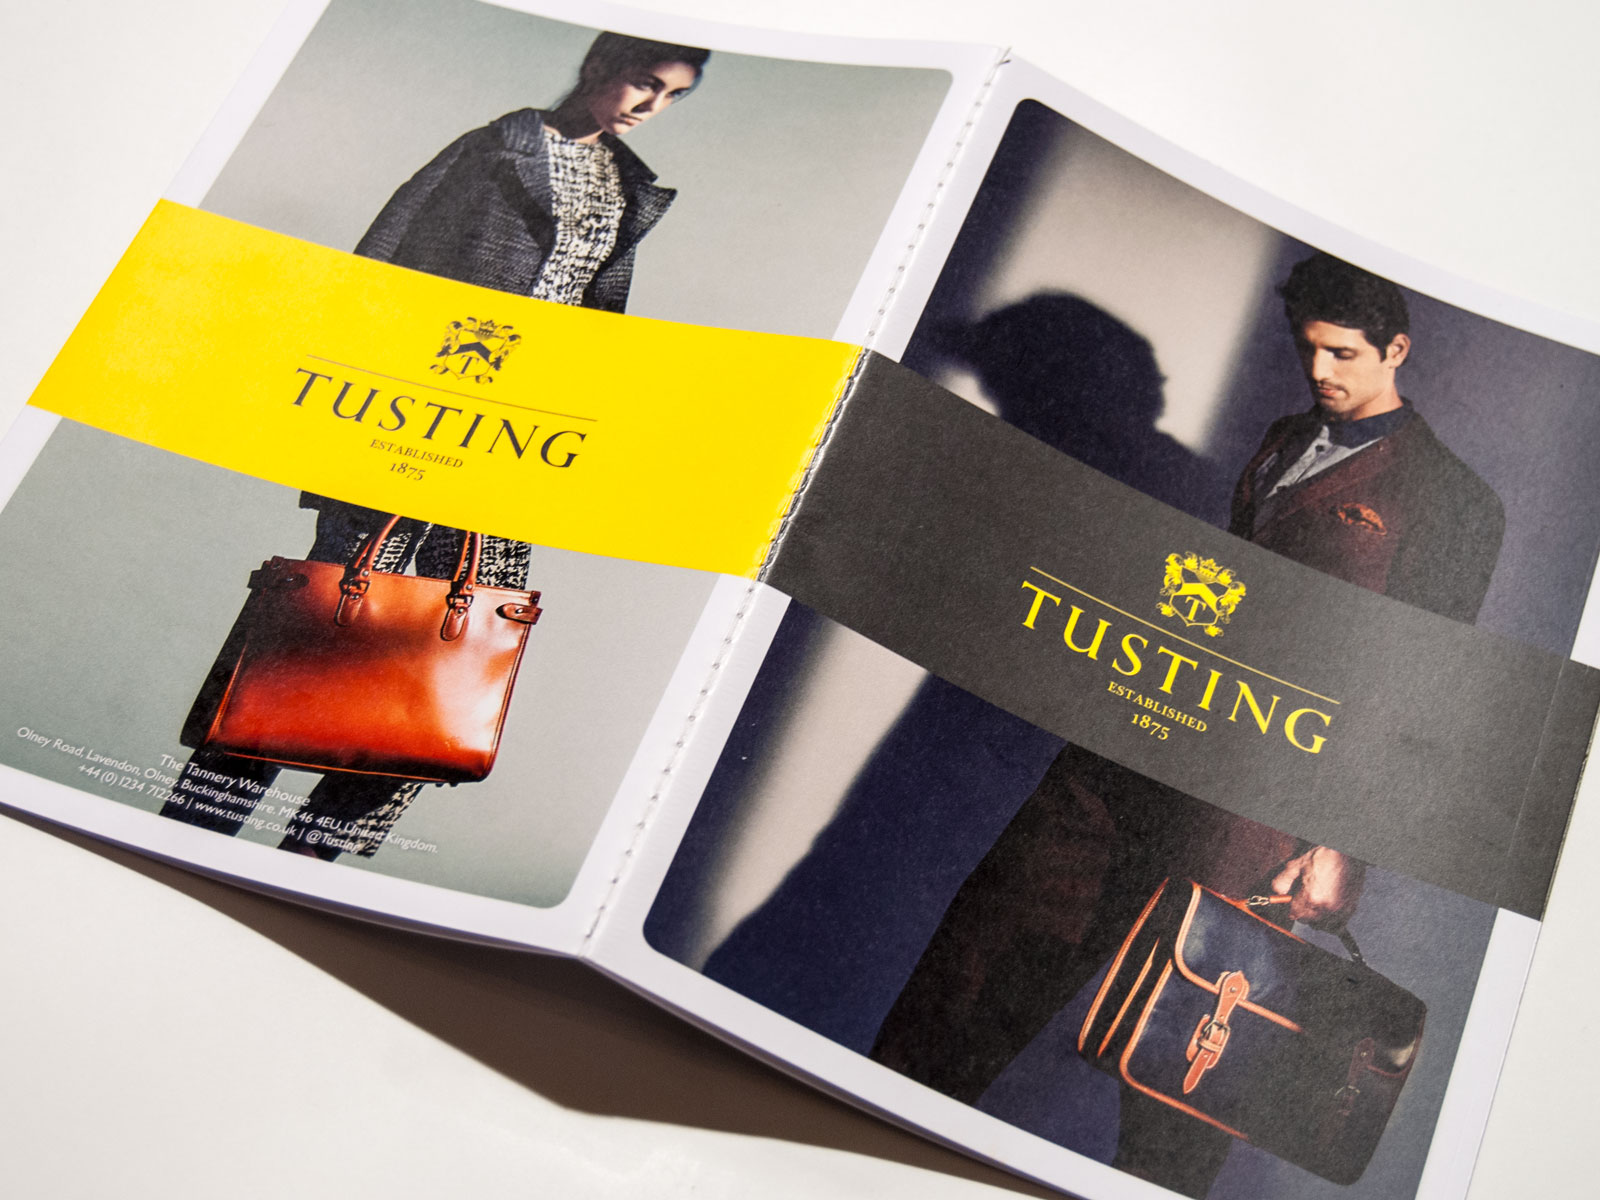 StraightForward. Tusting Catalogue design